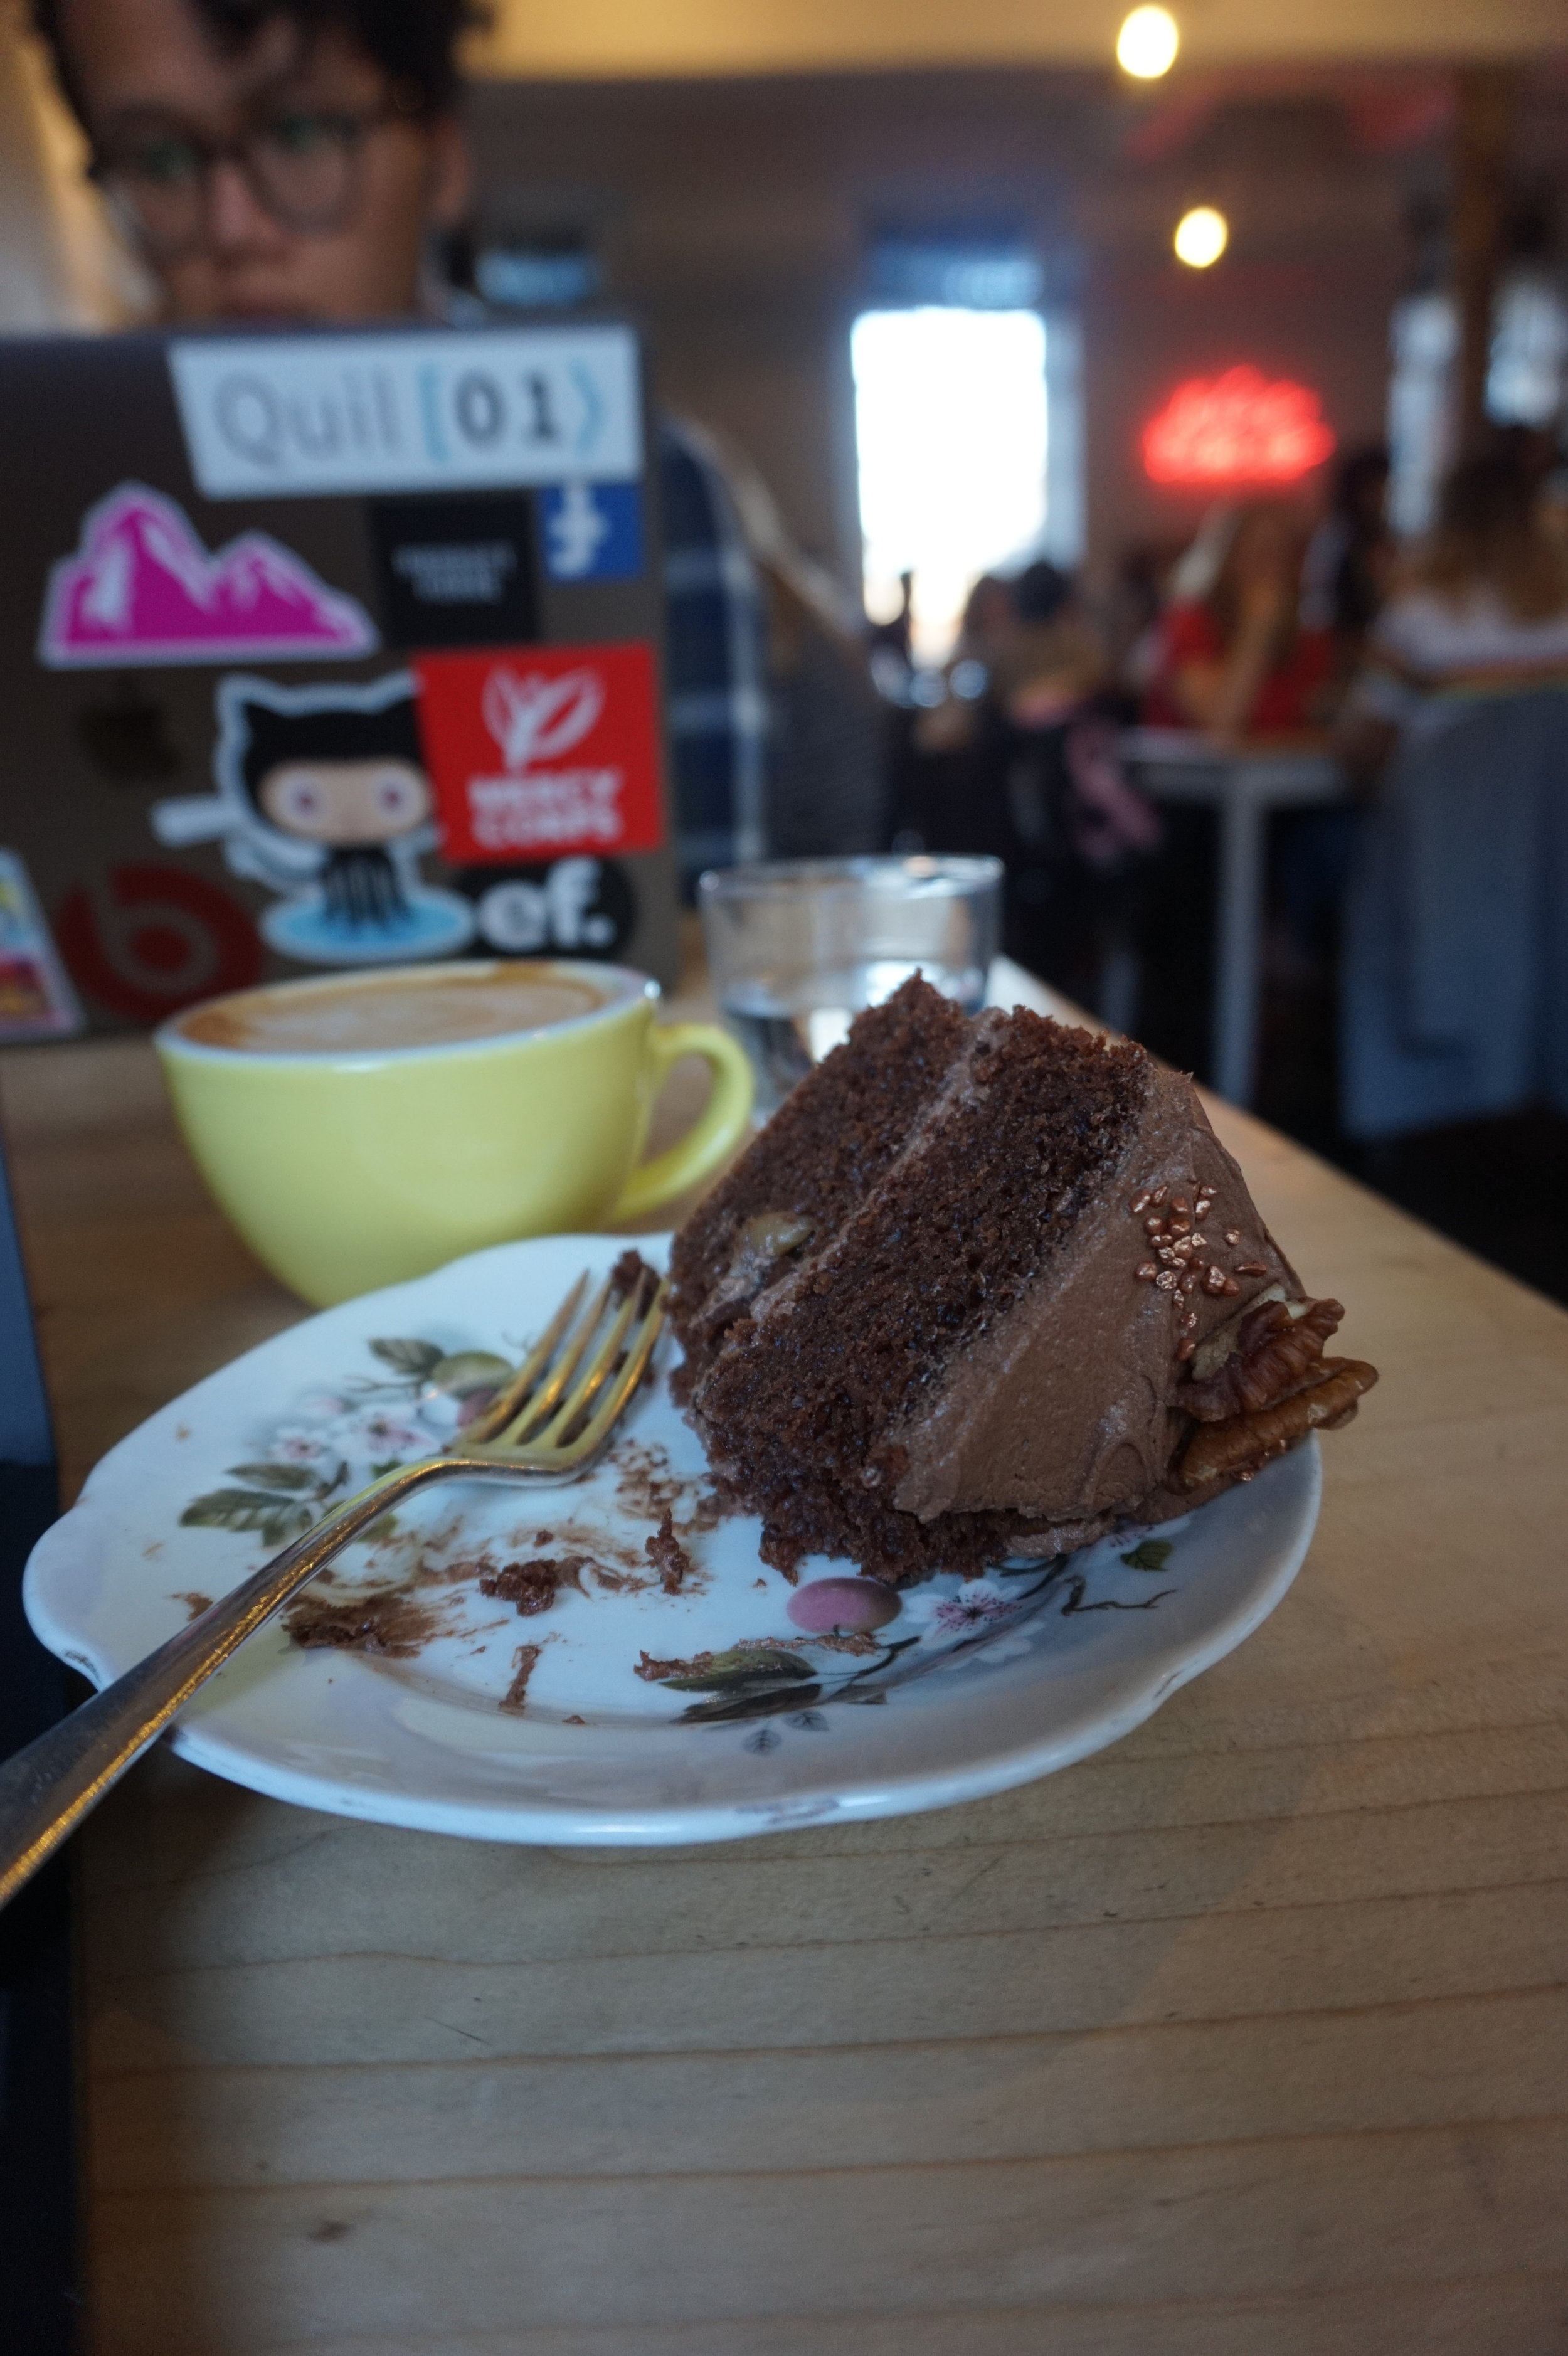 CHOCOLATE CAKE AND WIFI AT LOVECRUMBS - WHAT MORE COULD A GIRL WANT?